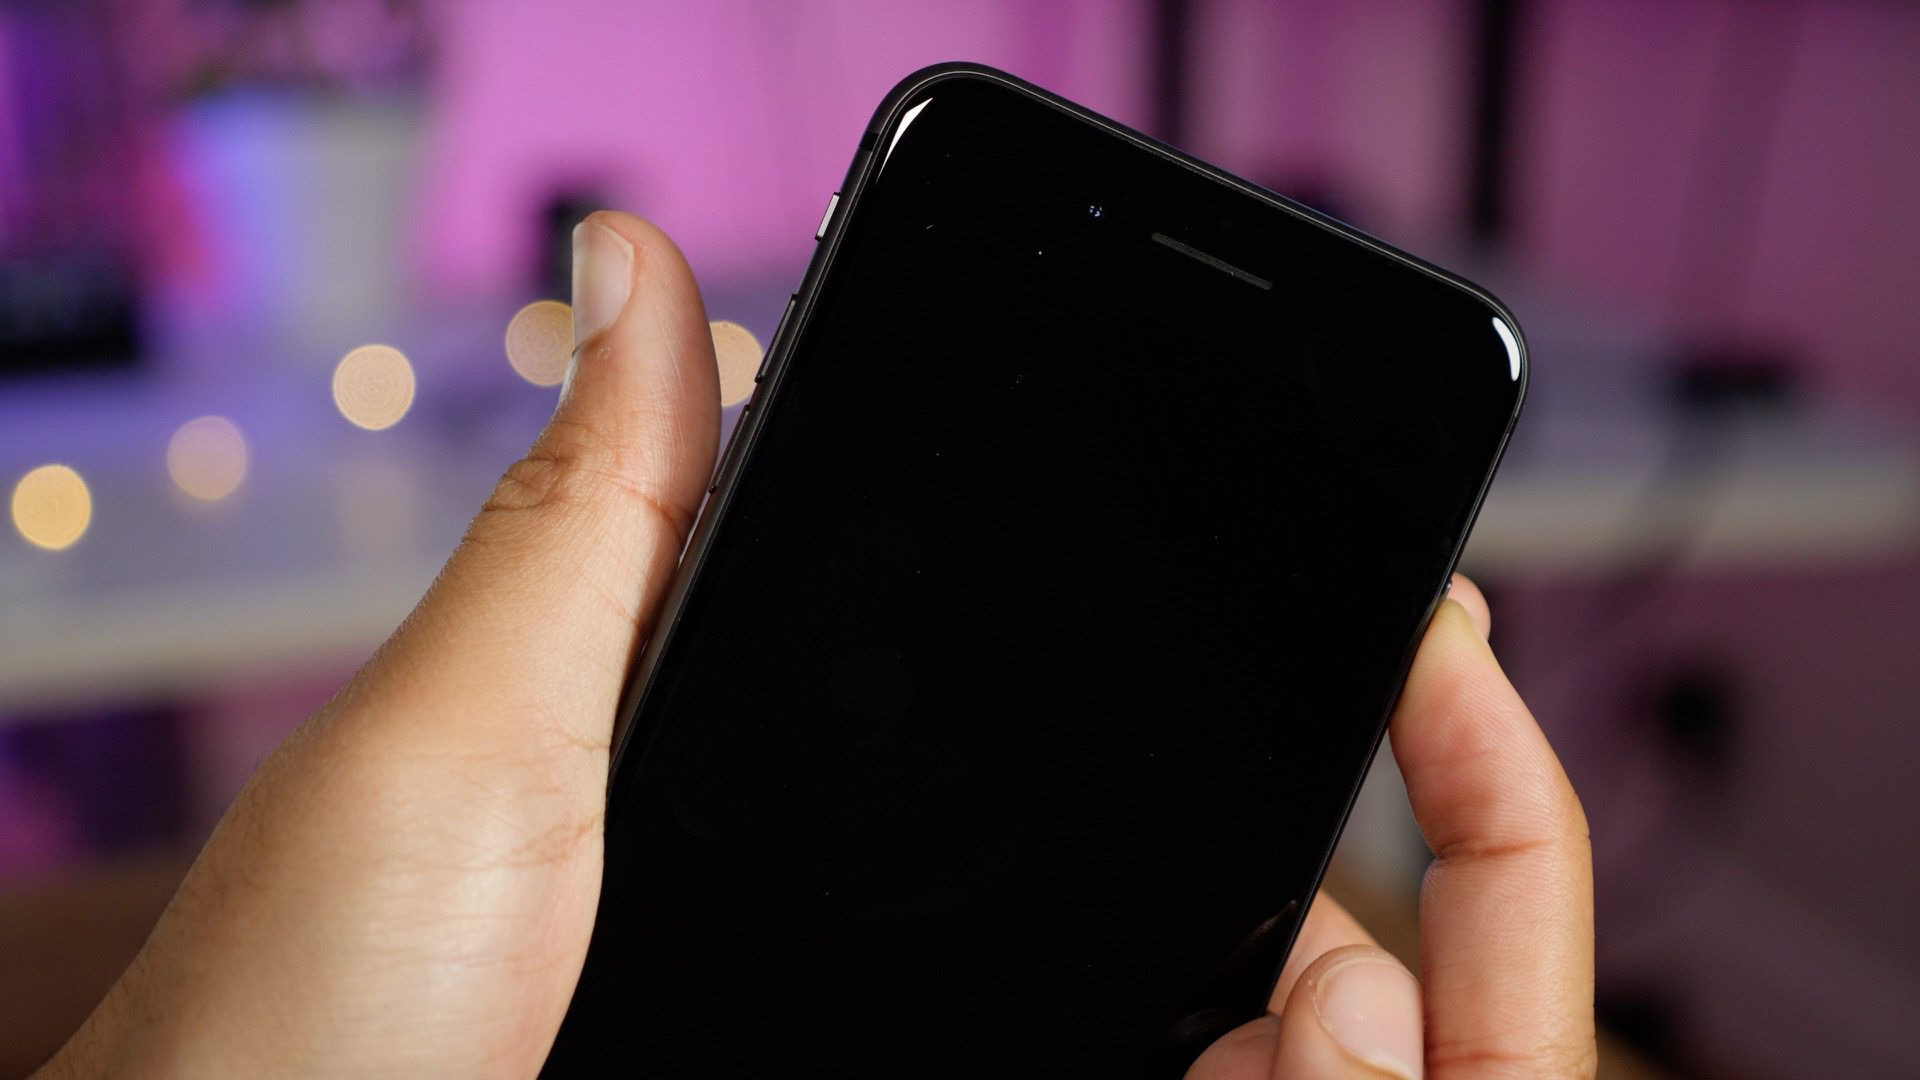 iPhone Troubles? Our Go-To Guide for All Your iPhone Issues